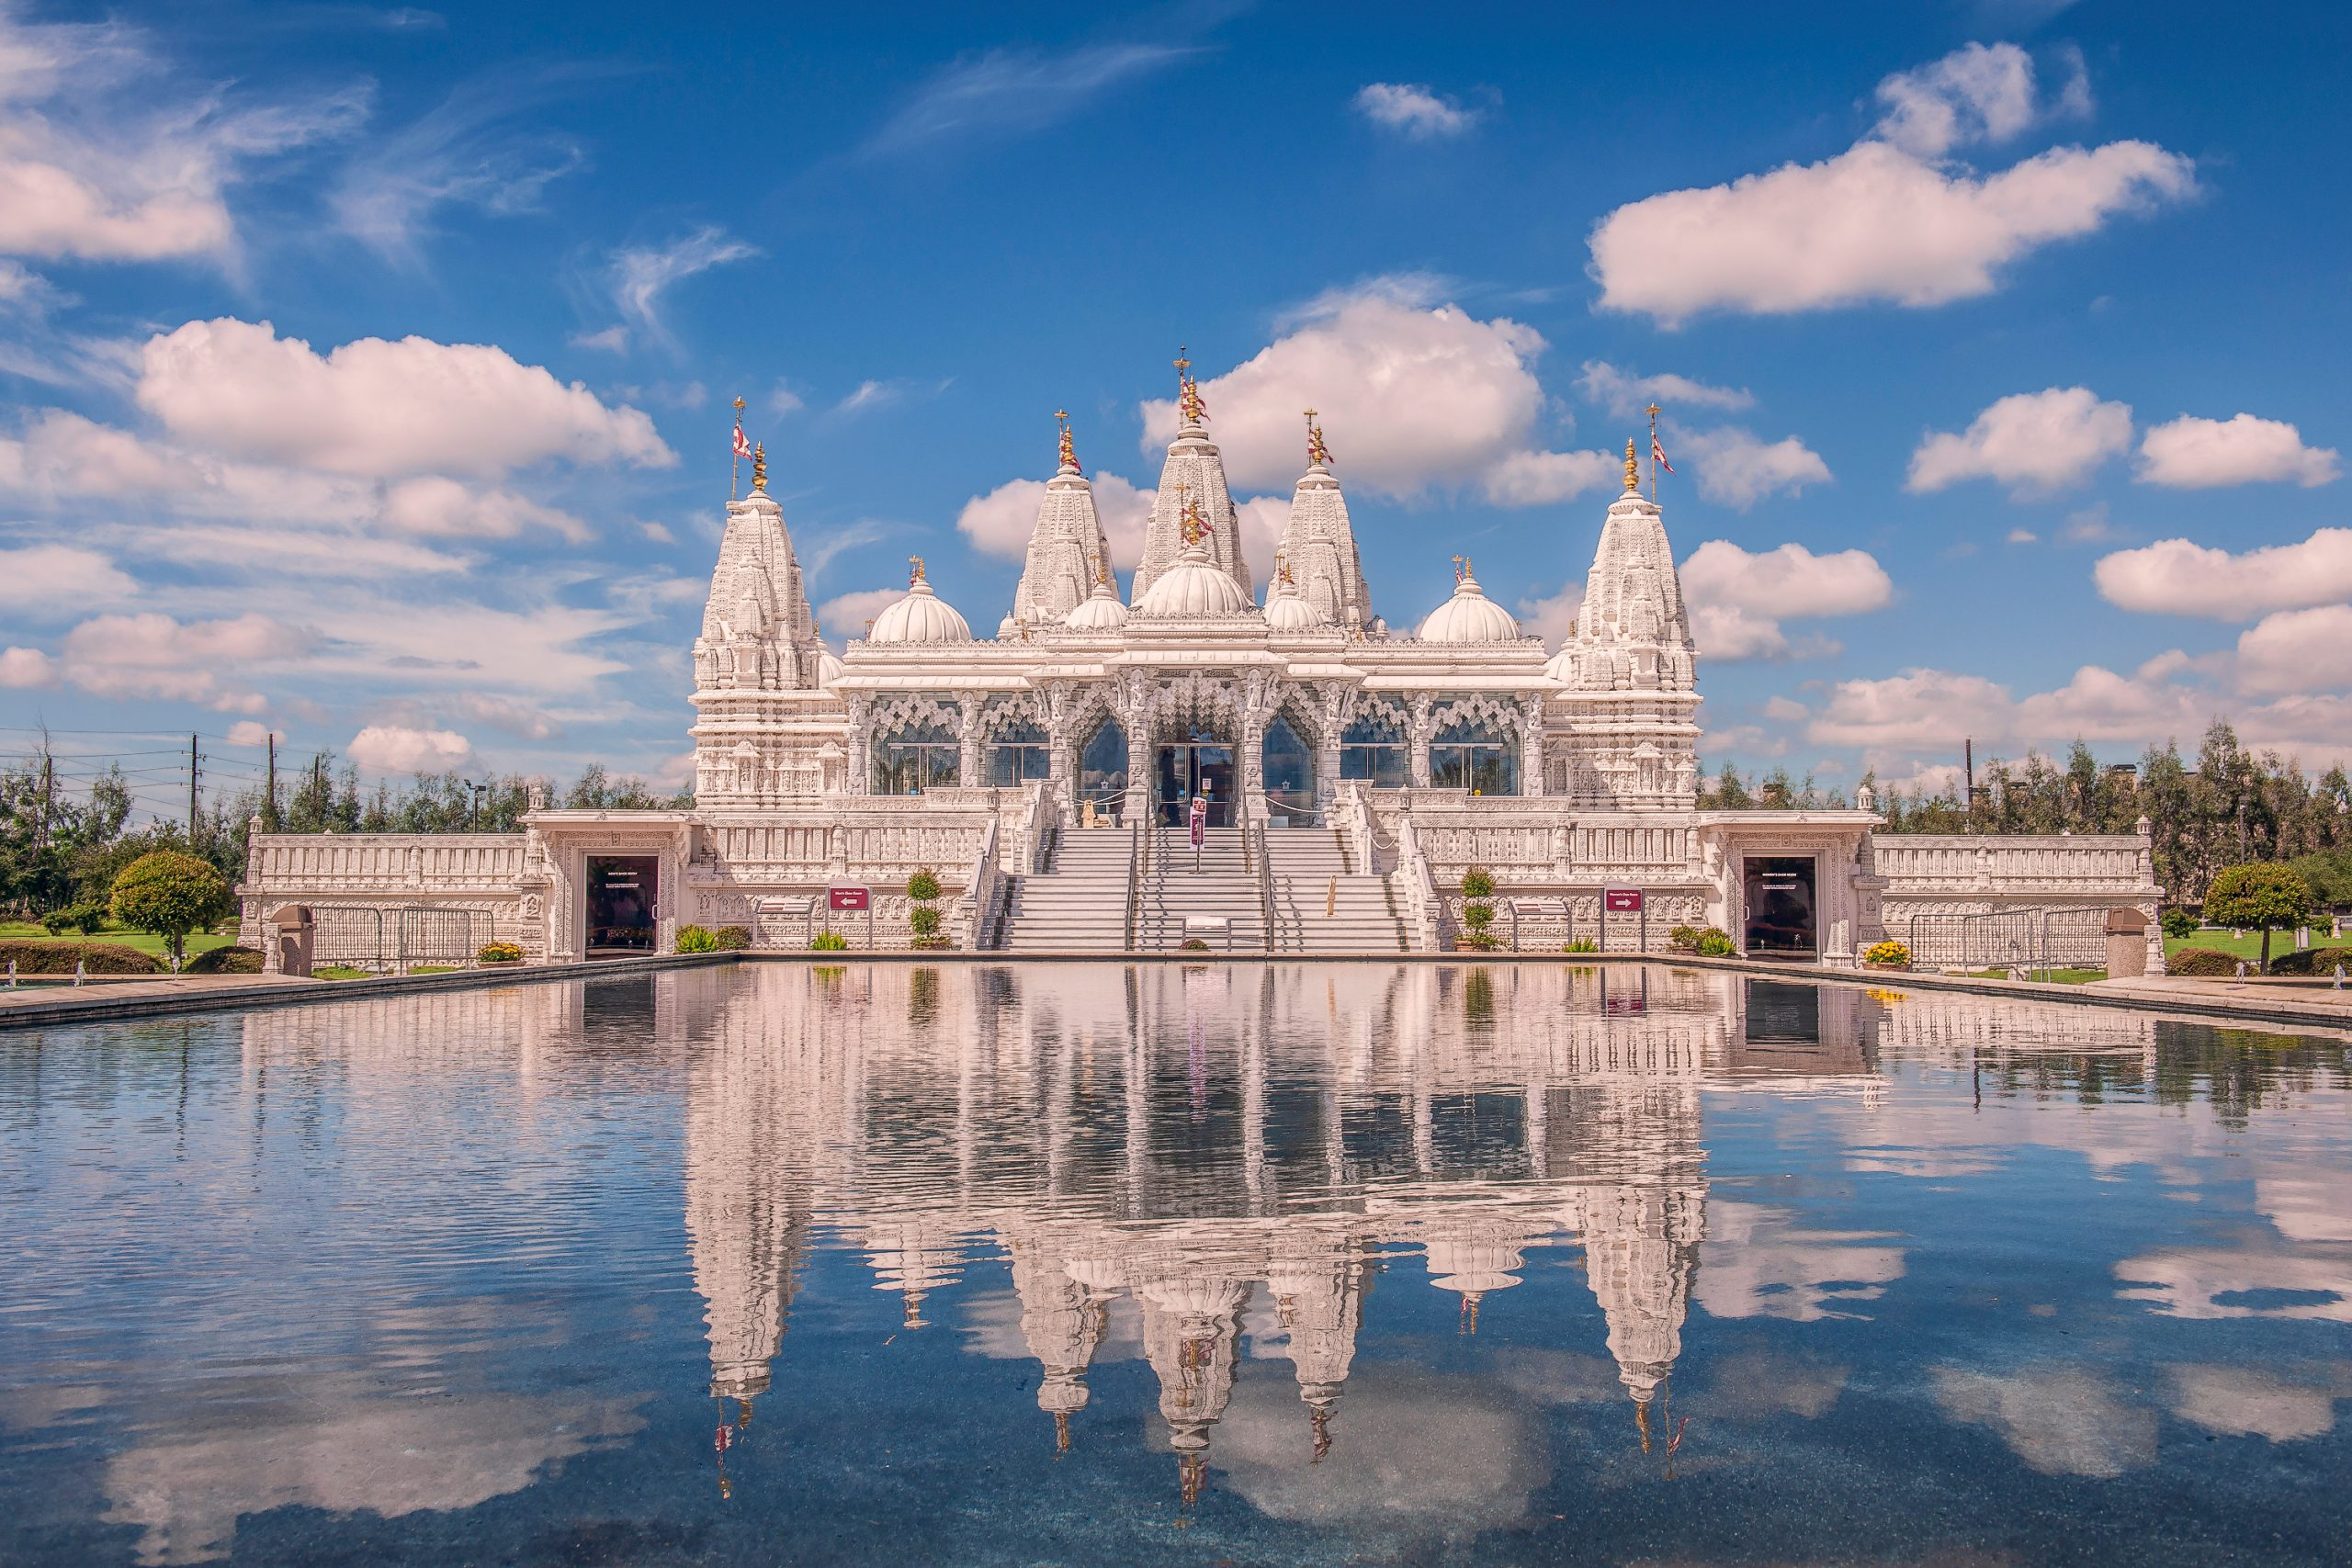 BAPS Shri Swaminarayan Temple as seen across a reflection pool. This traditional Hindu temple is one of the best places to take pictures in Houston TX